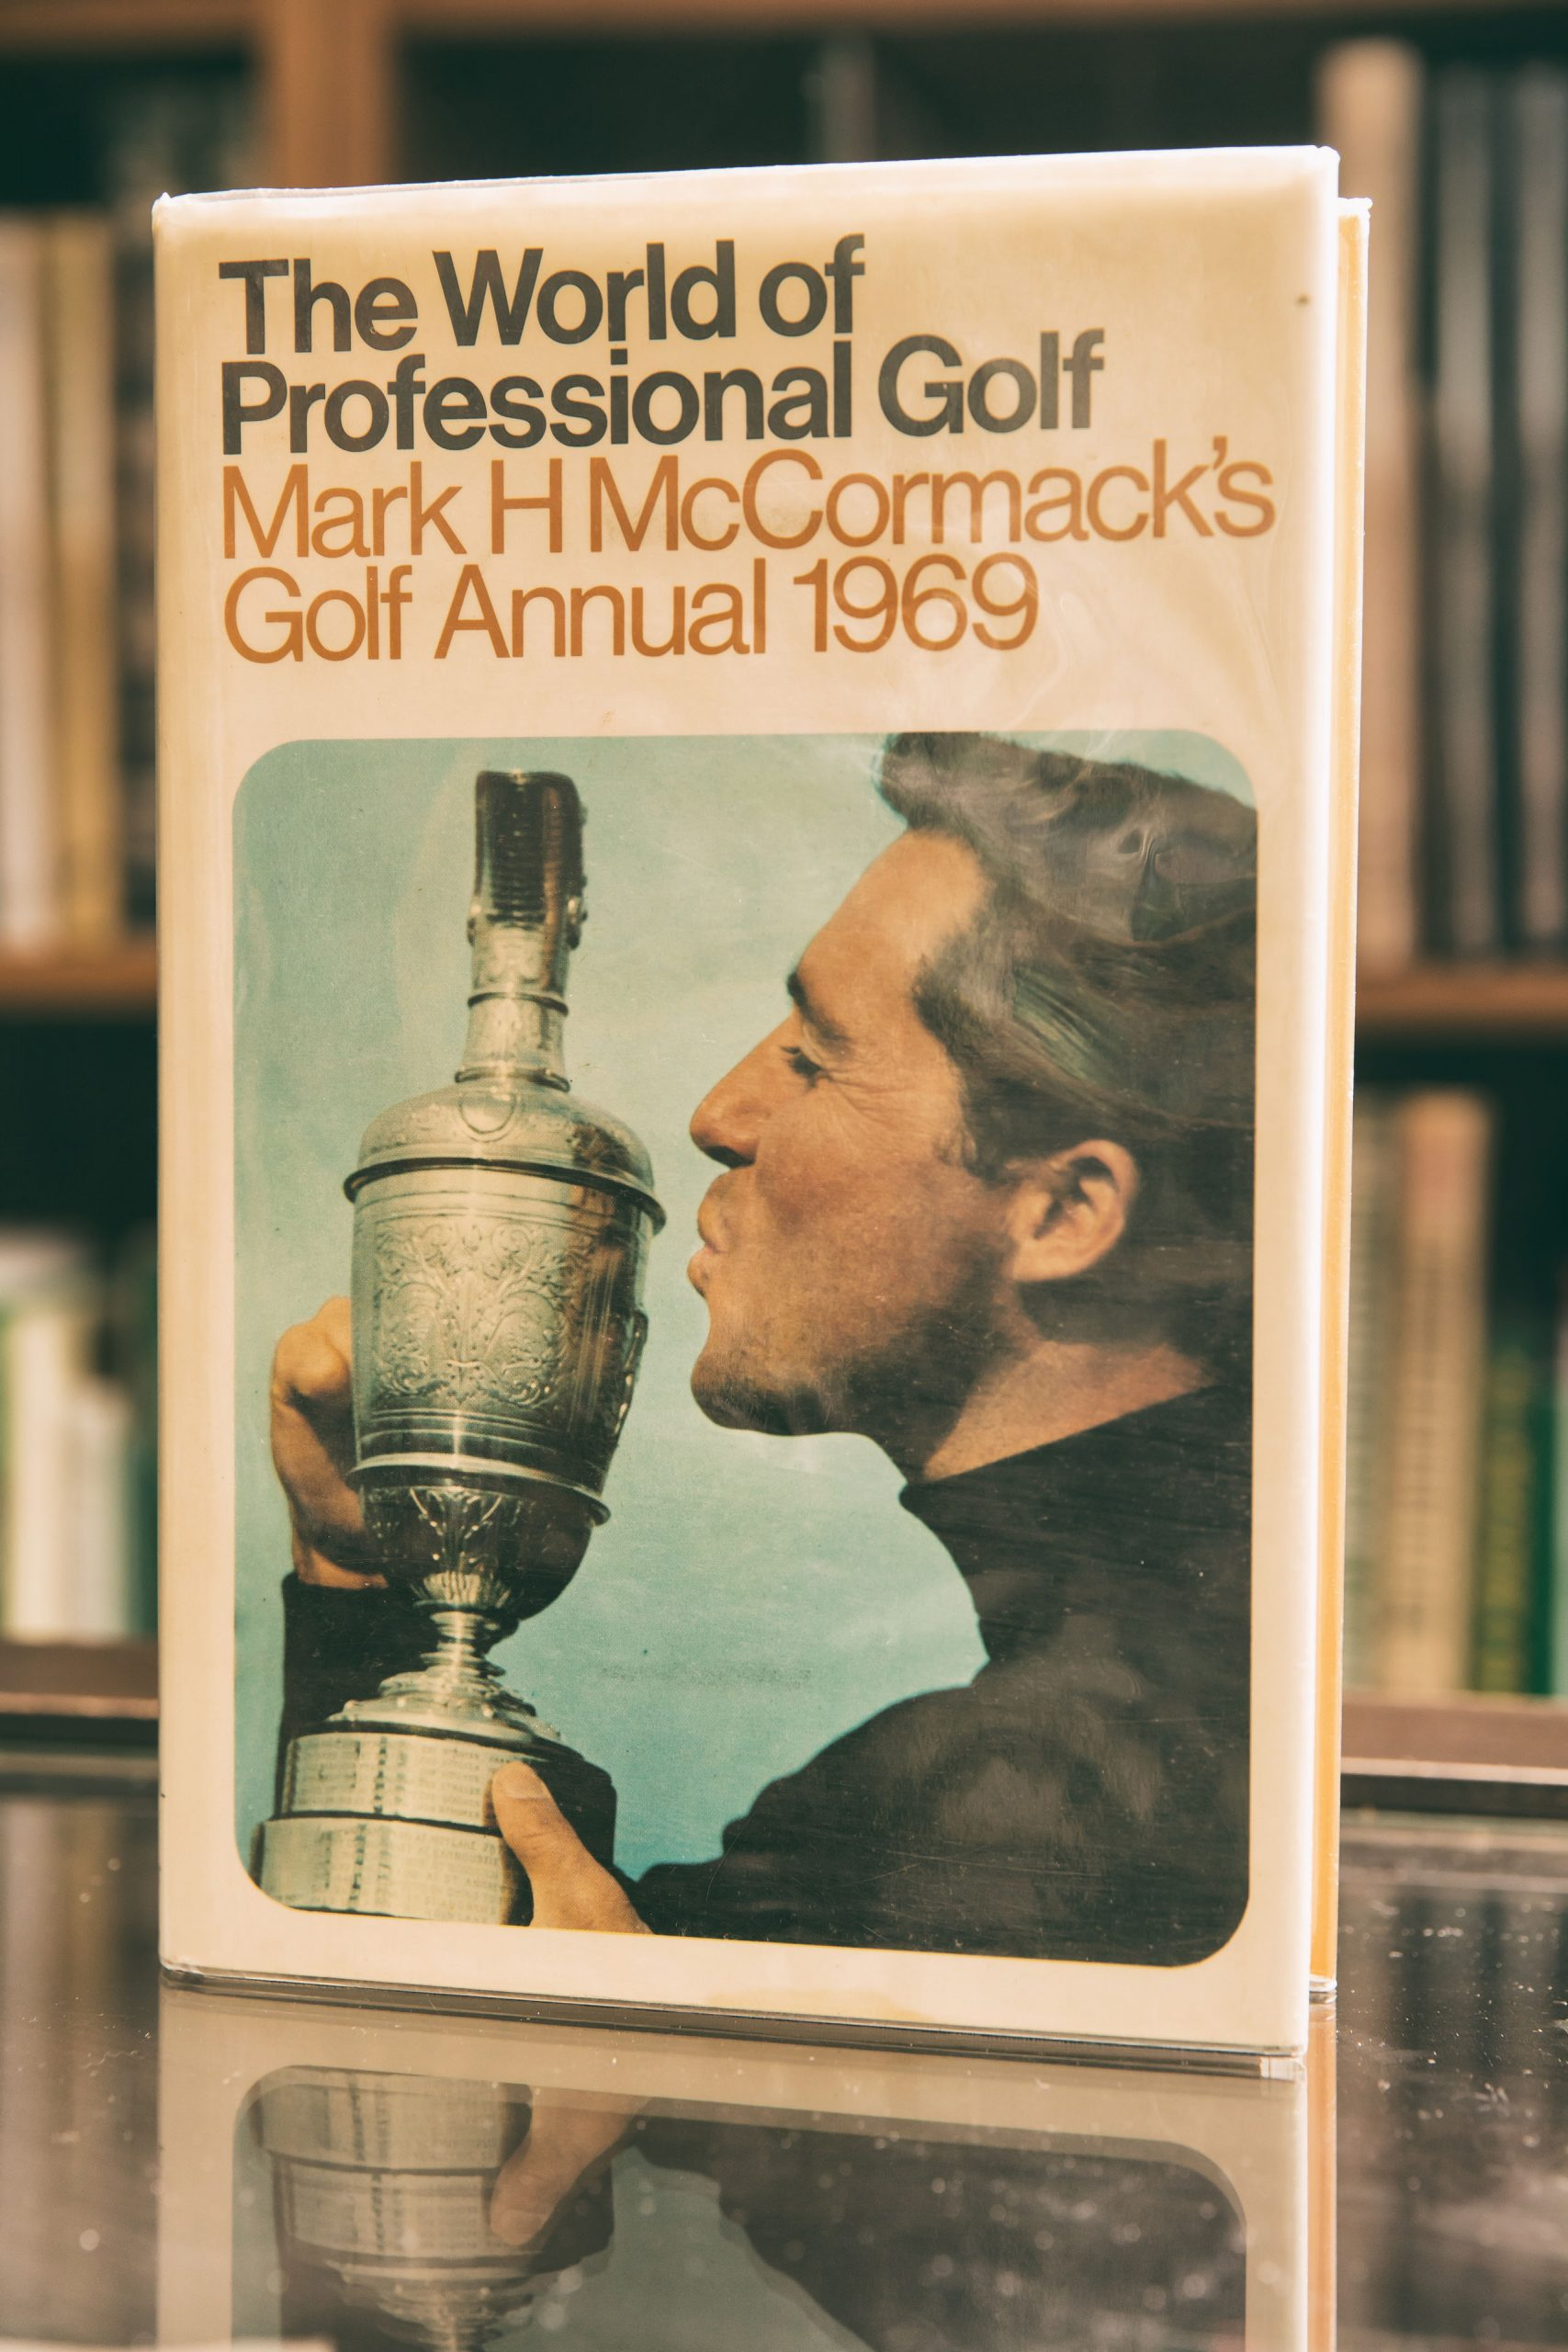 THE WORLD OF PROFESSIONAL GOLF: MARK H. MCCORMACK'S GOLF ANNUAL 1969. Photo by Todd Rosenberg.